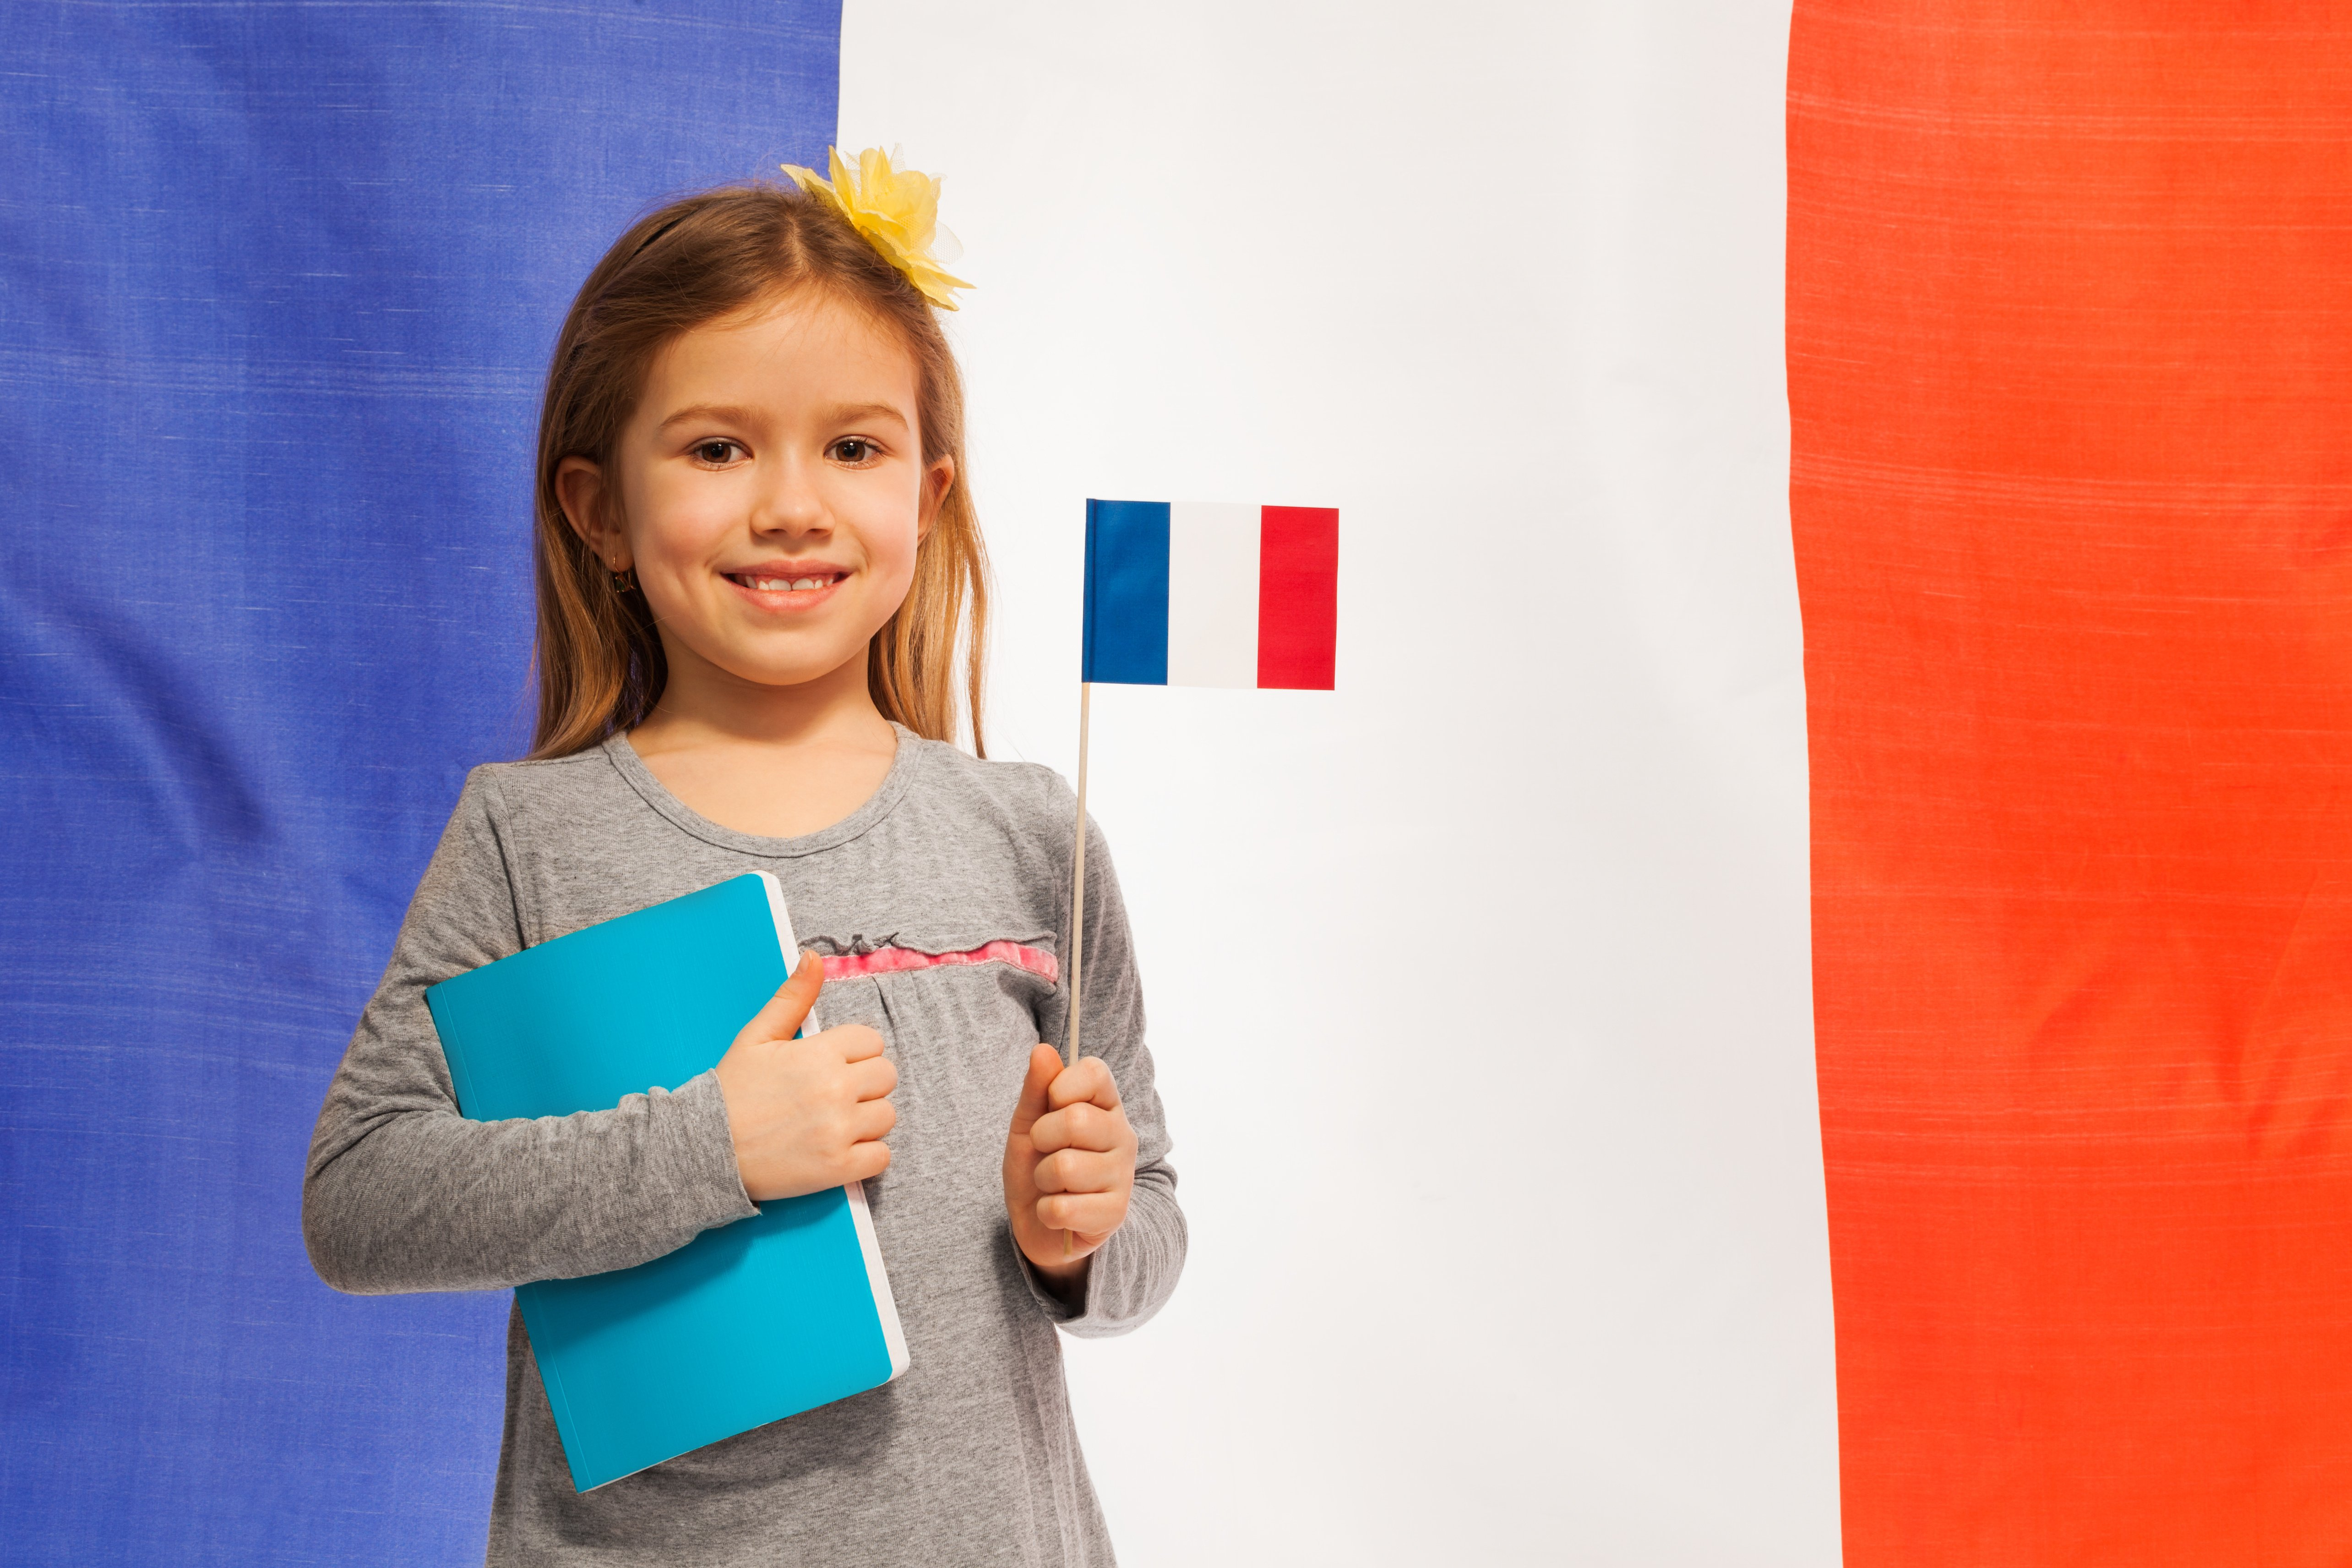 Smiling schoolgirl with flag and textbook against French flag standing against flag of France